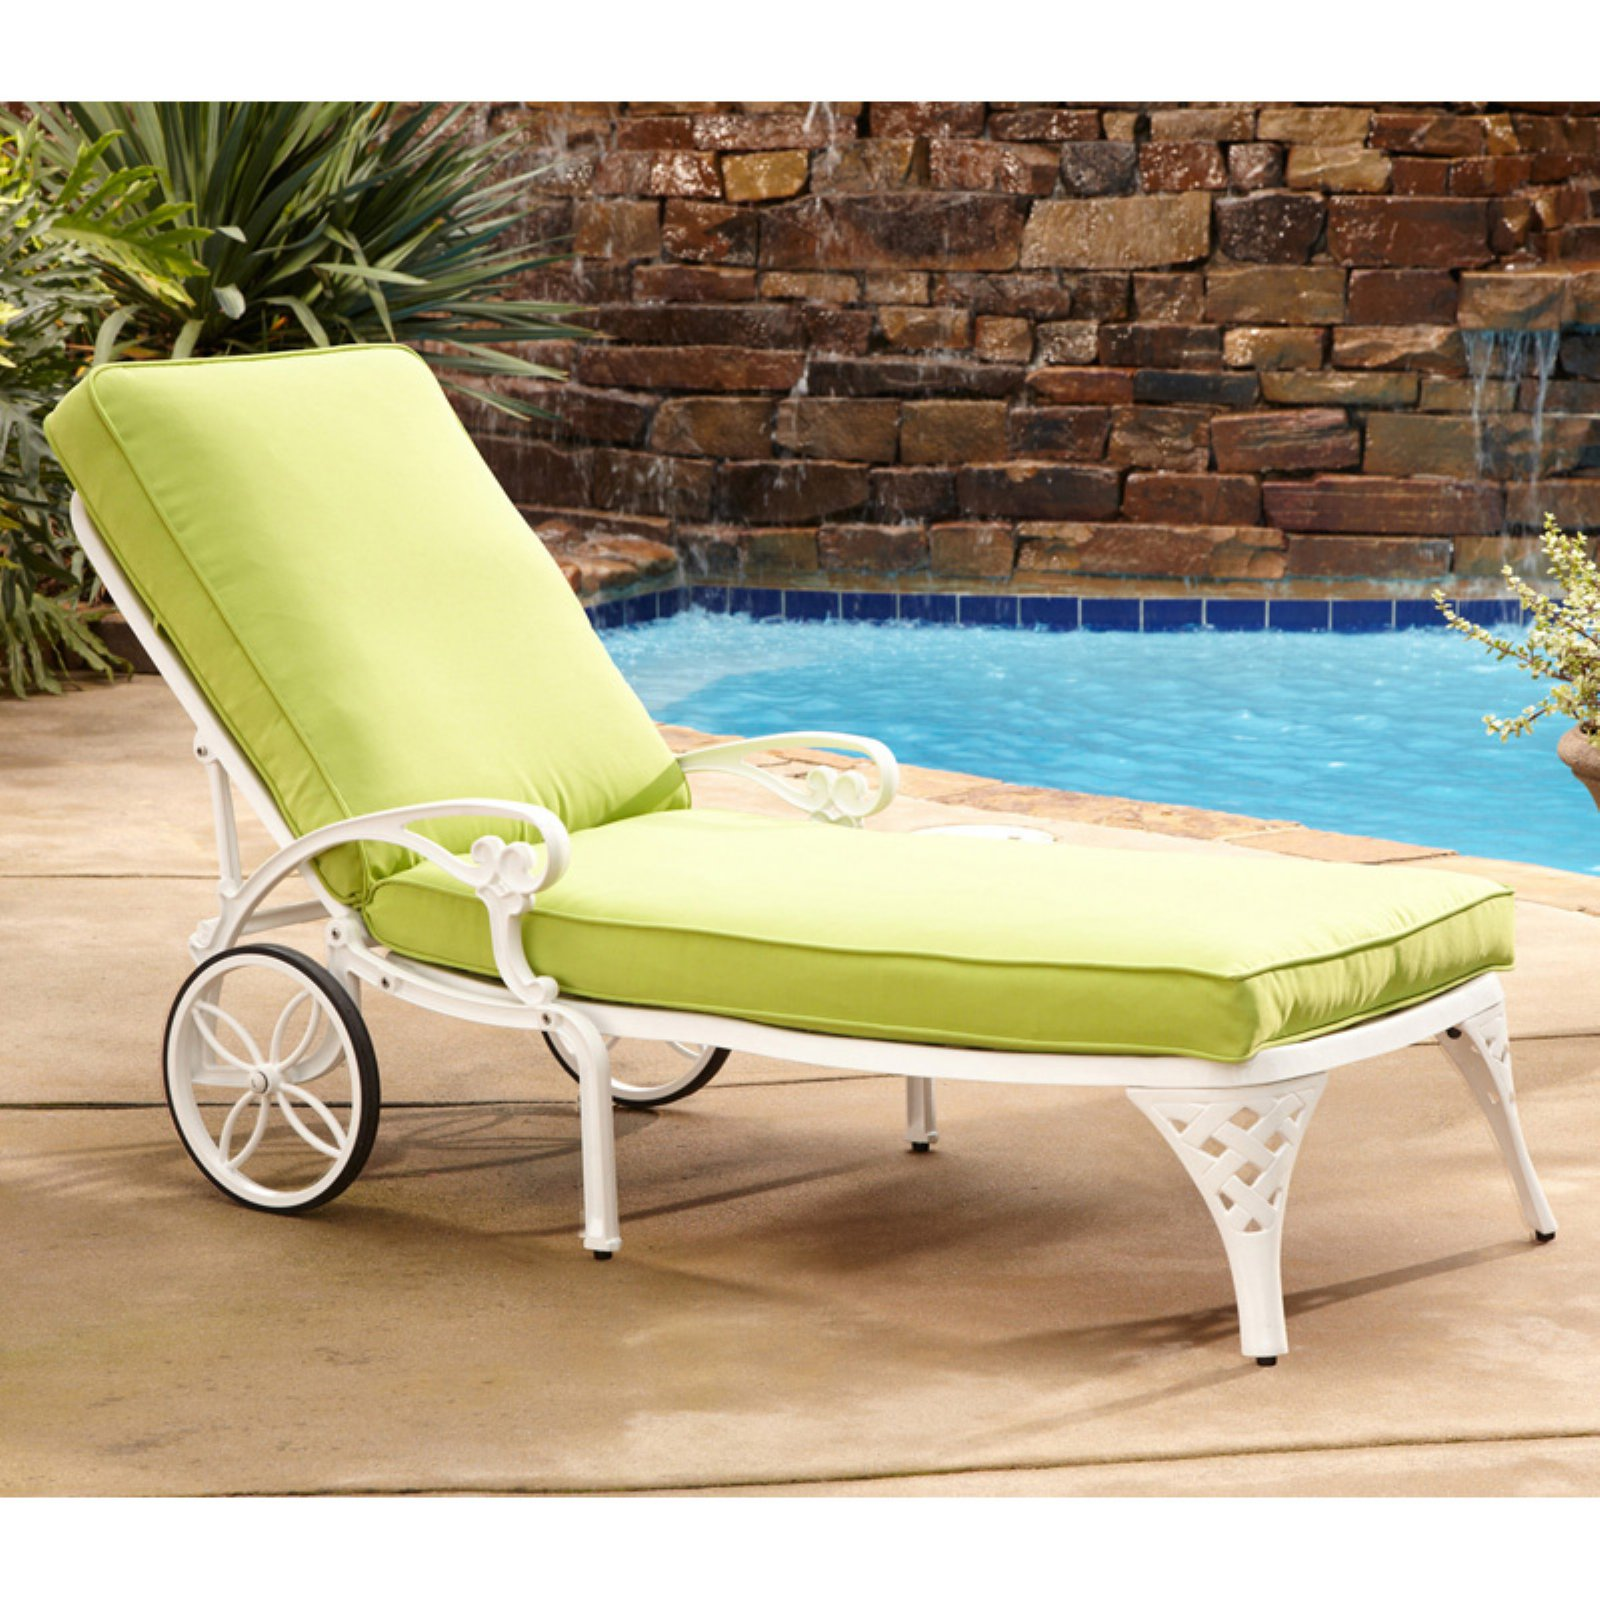 Home Styles Biscayne Chaise Lounge Chair with Cushions, Set of 2